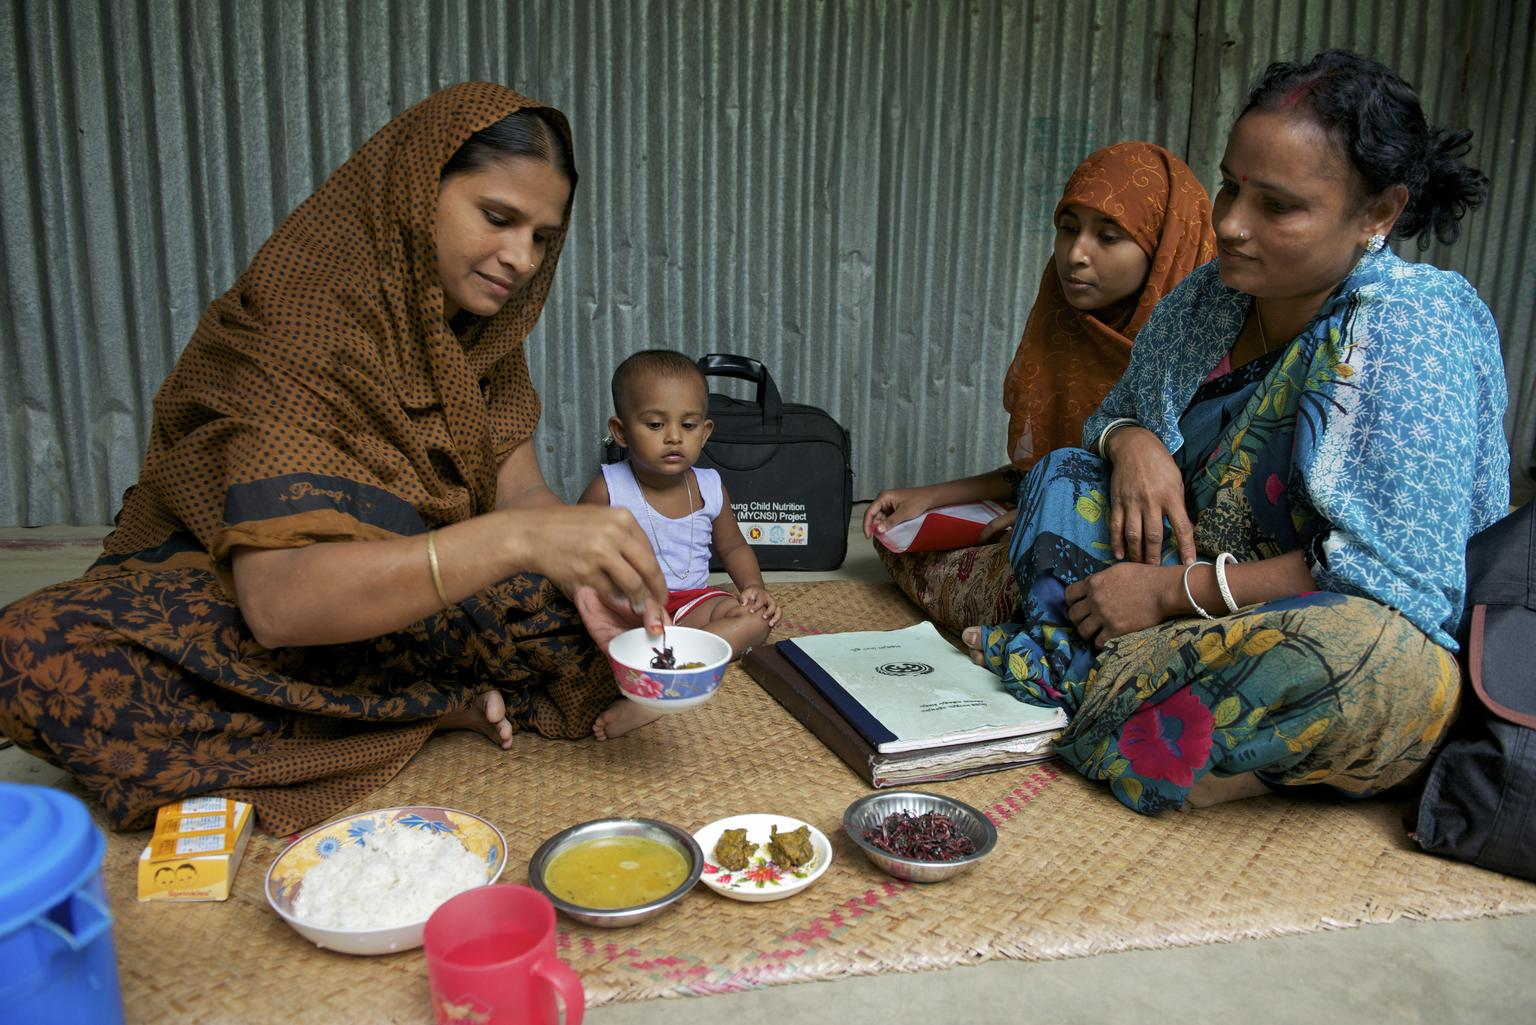 In Bangladesh, Chaya Rani (left) adds Sprinkles, a micronutrient powder (MNP), to food for her 15-month-old daughter.